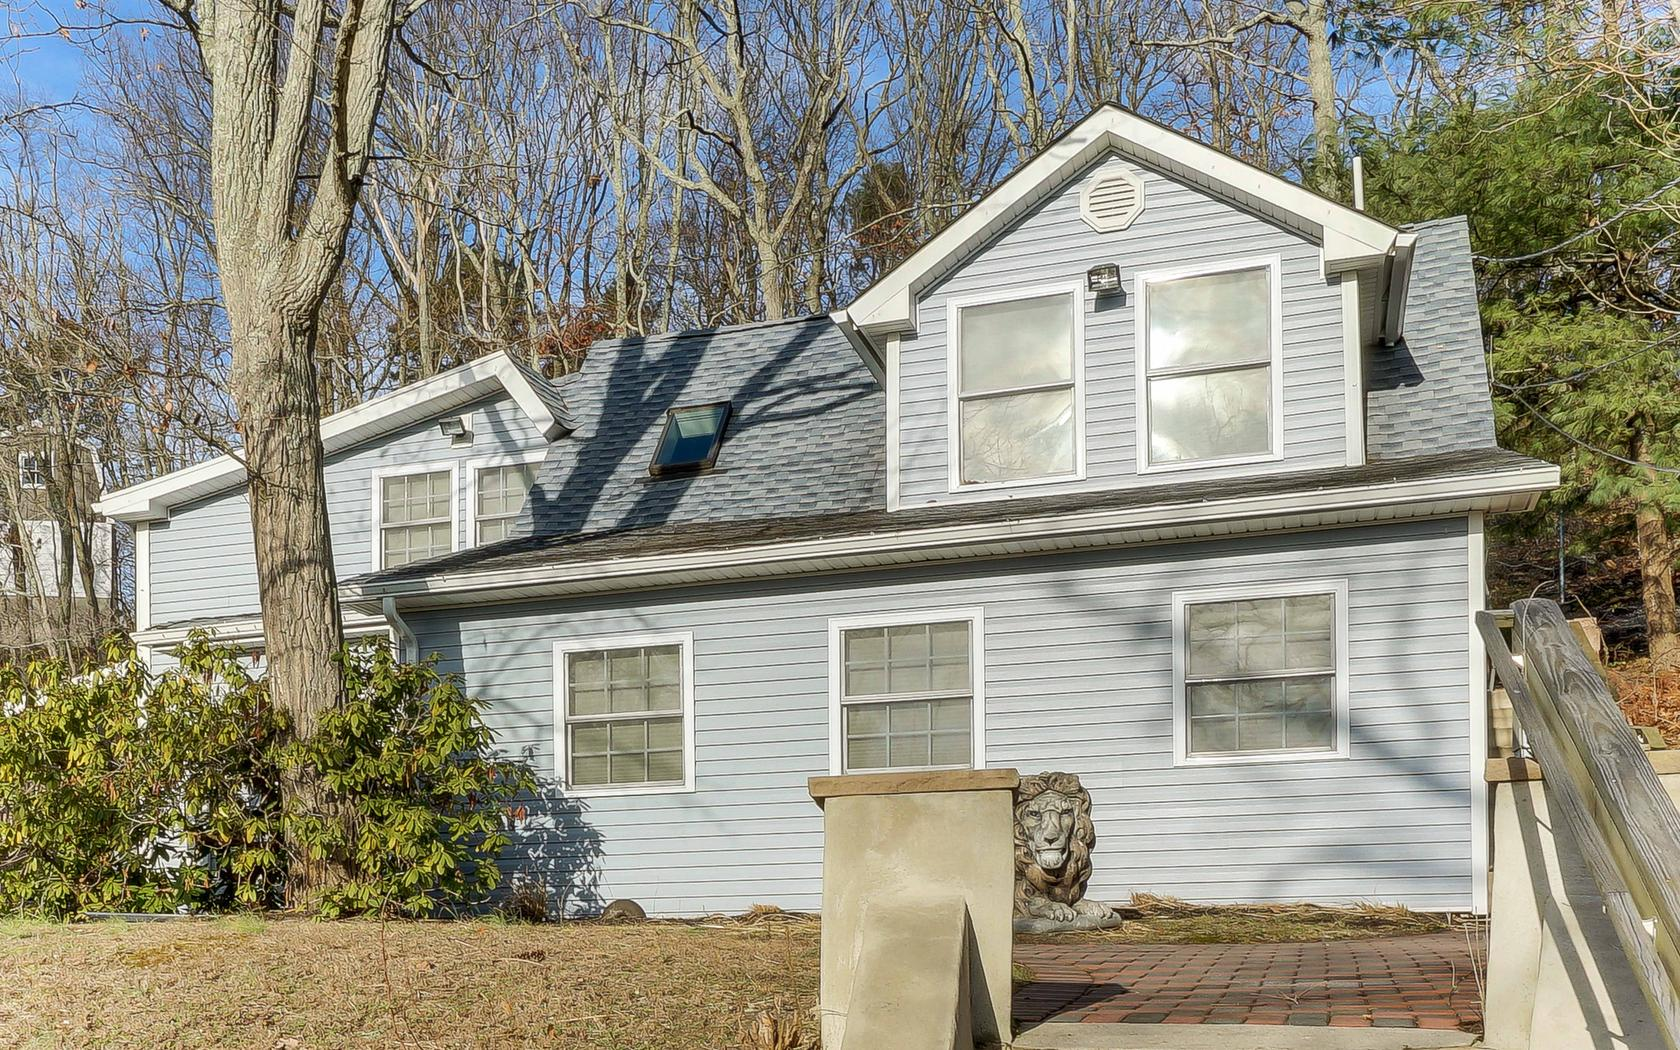 Single Family Home for Sale at Shark River Hills Home 230 Hillside Drive Neptune, New Jersey 07753 United States